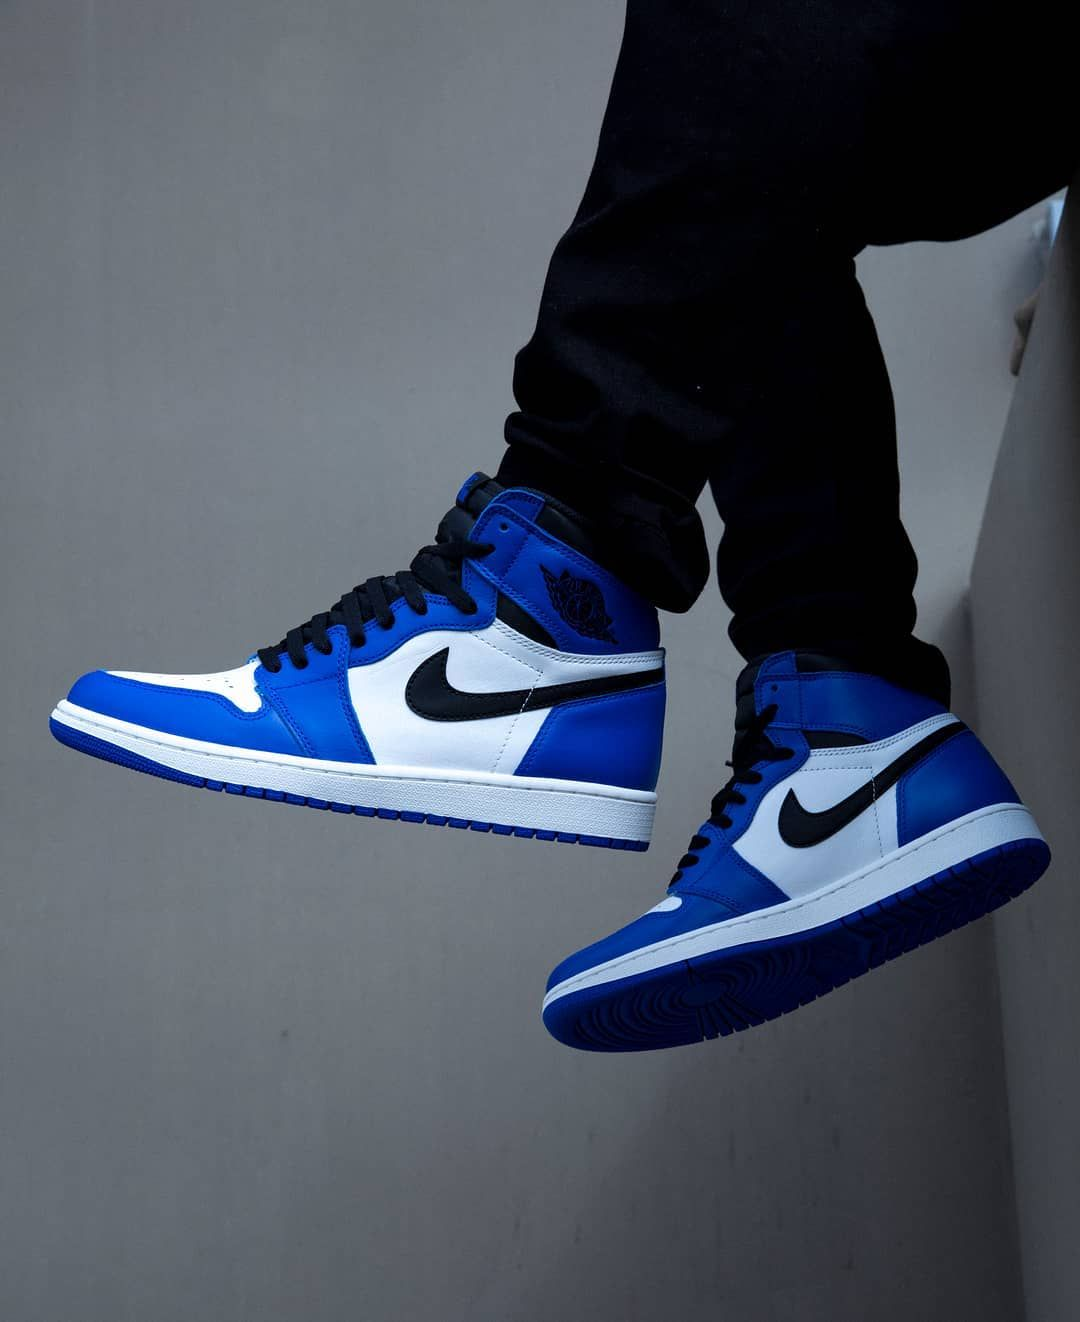 new product cd5cb 22ada Release Date   March 24, 2018 Air Jordan 1 « Game Royal » Credit   Shiekh